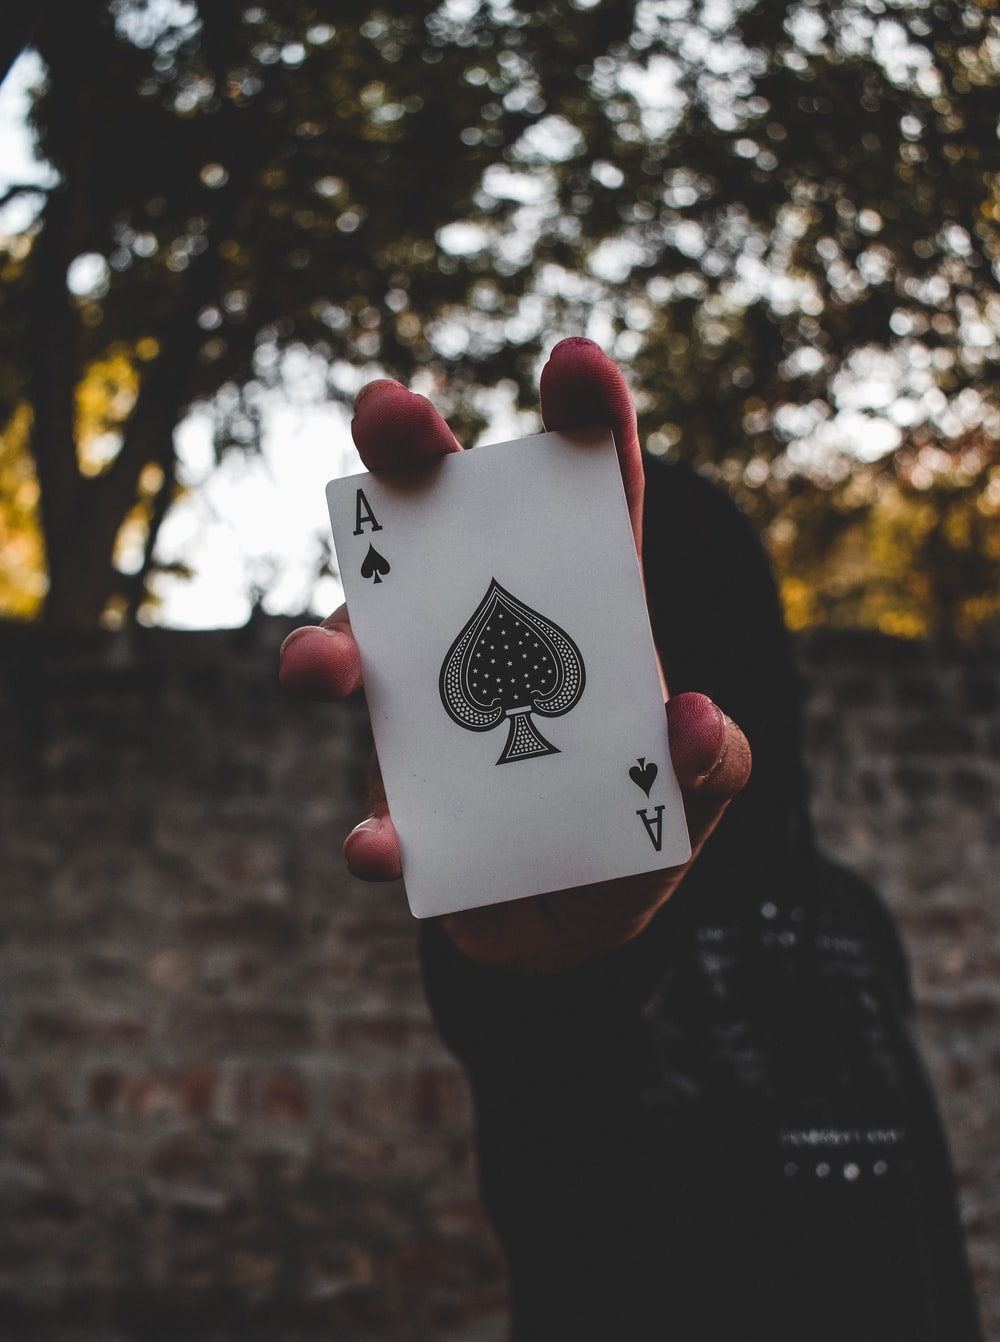 person holding ace of spade playing card